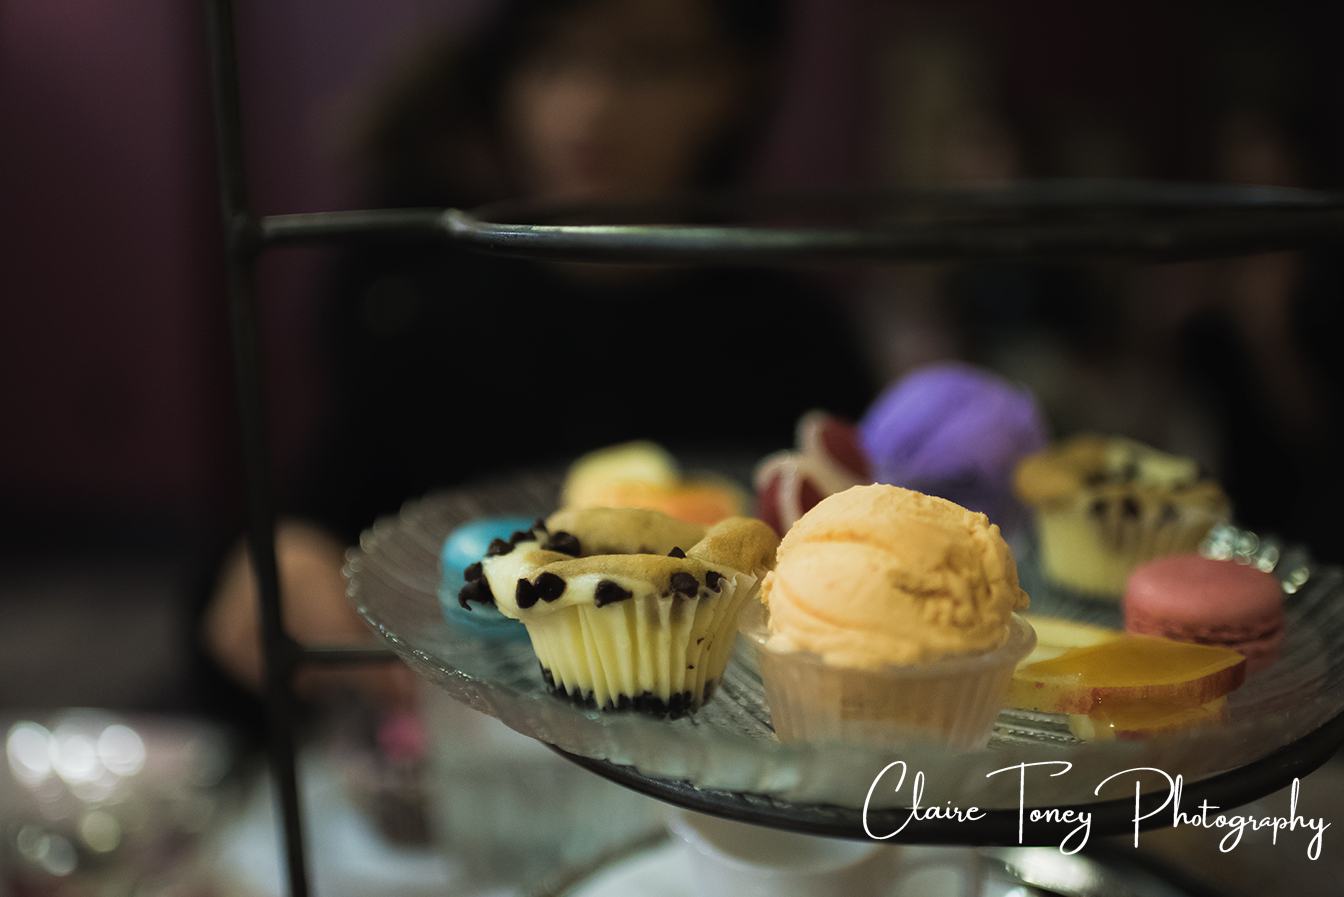 Dessert plate at Dash of Panache Teahouse Roseville CA Documentary Photography Claire Toney